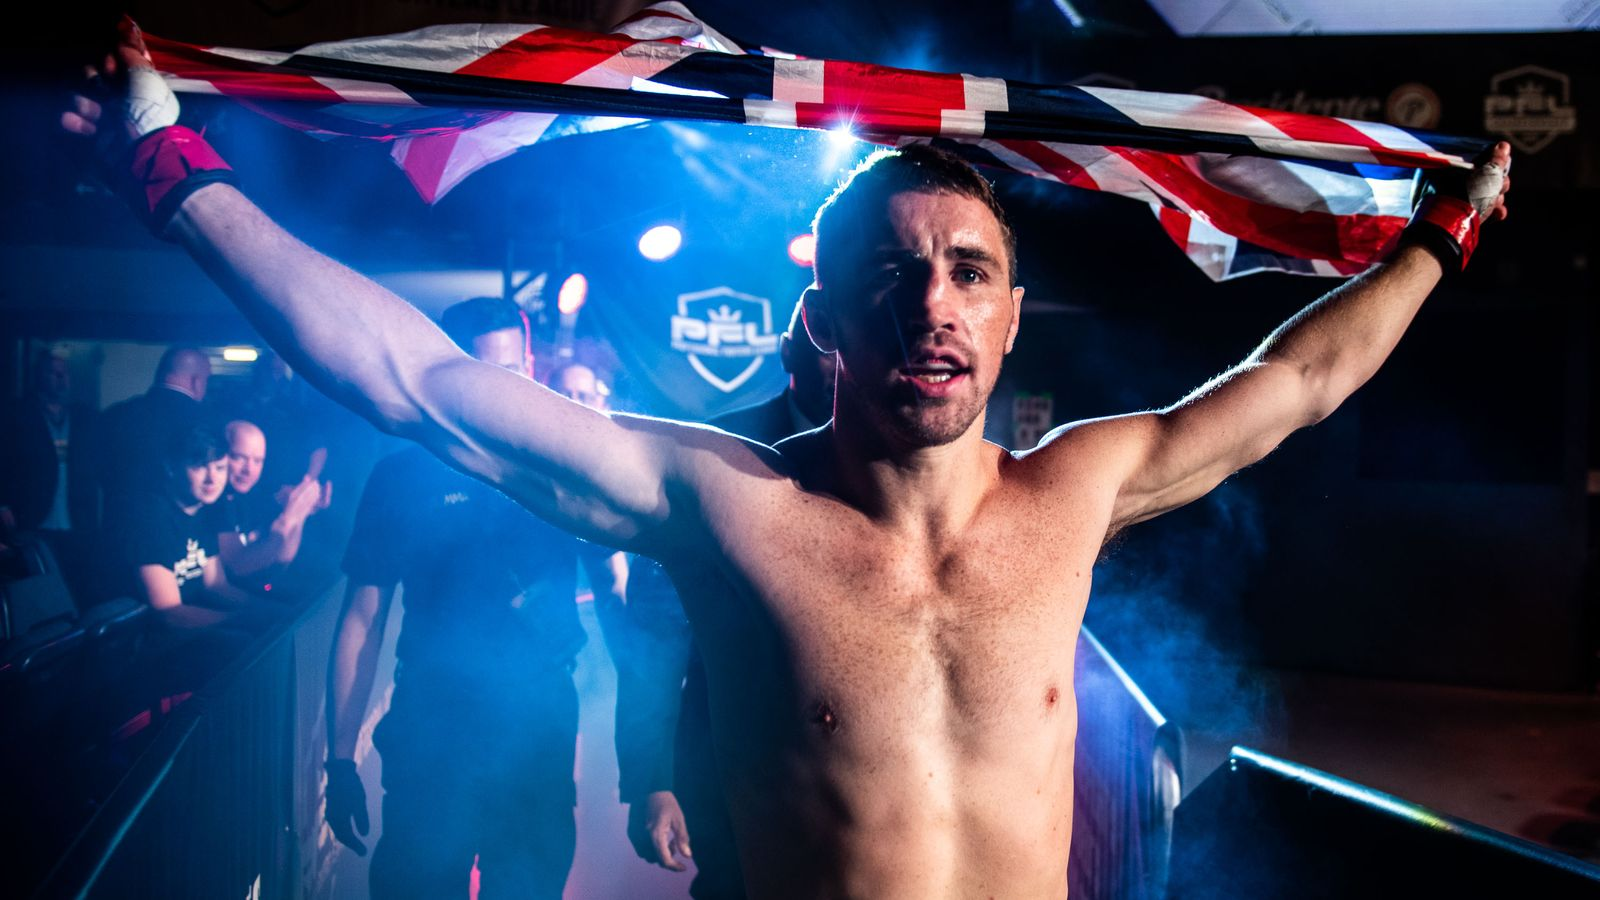 Brendan Loughnane believes that winning the Professional Fighters League (PFL) is more valuable than all the money in the world.